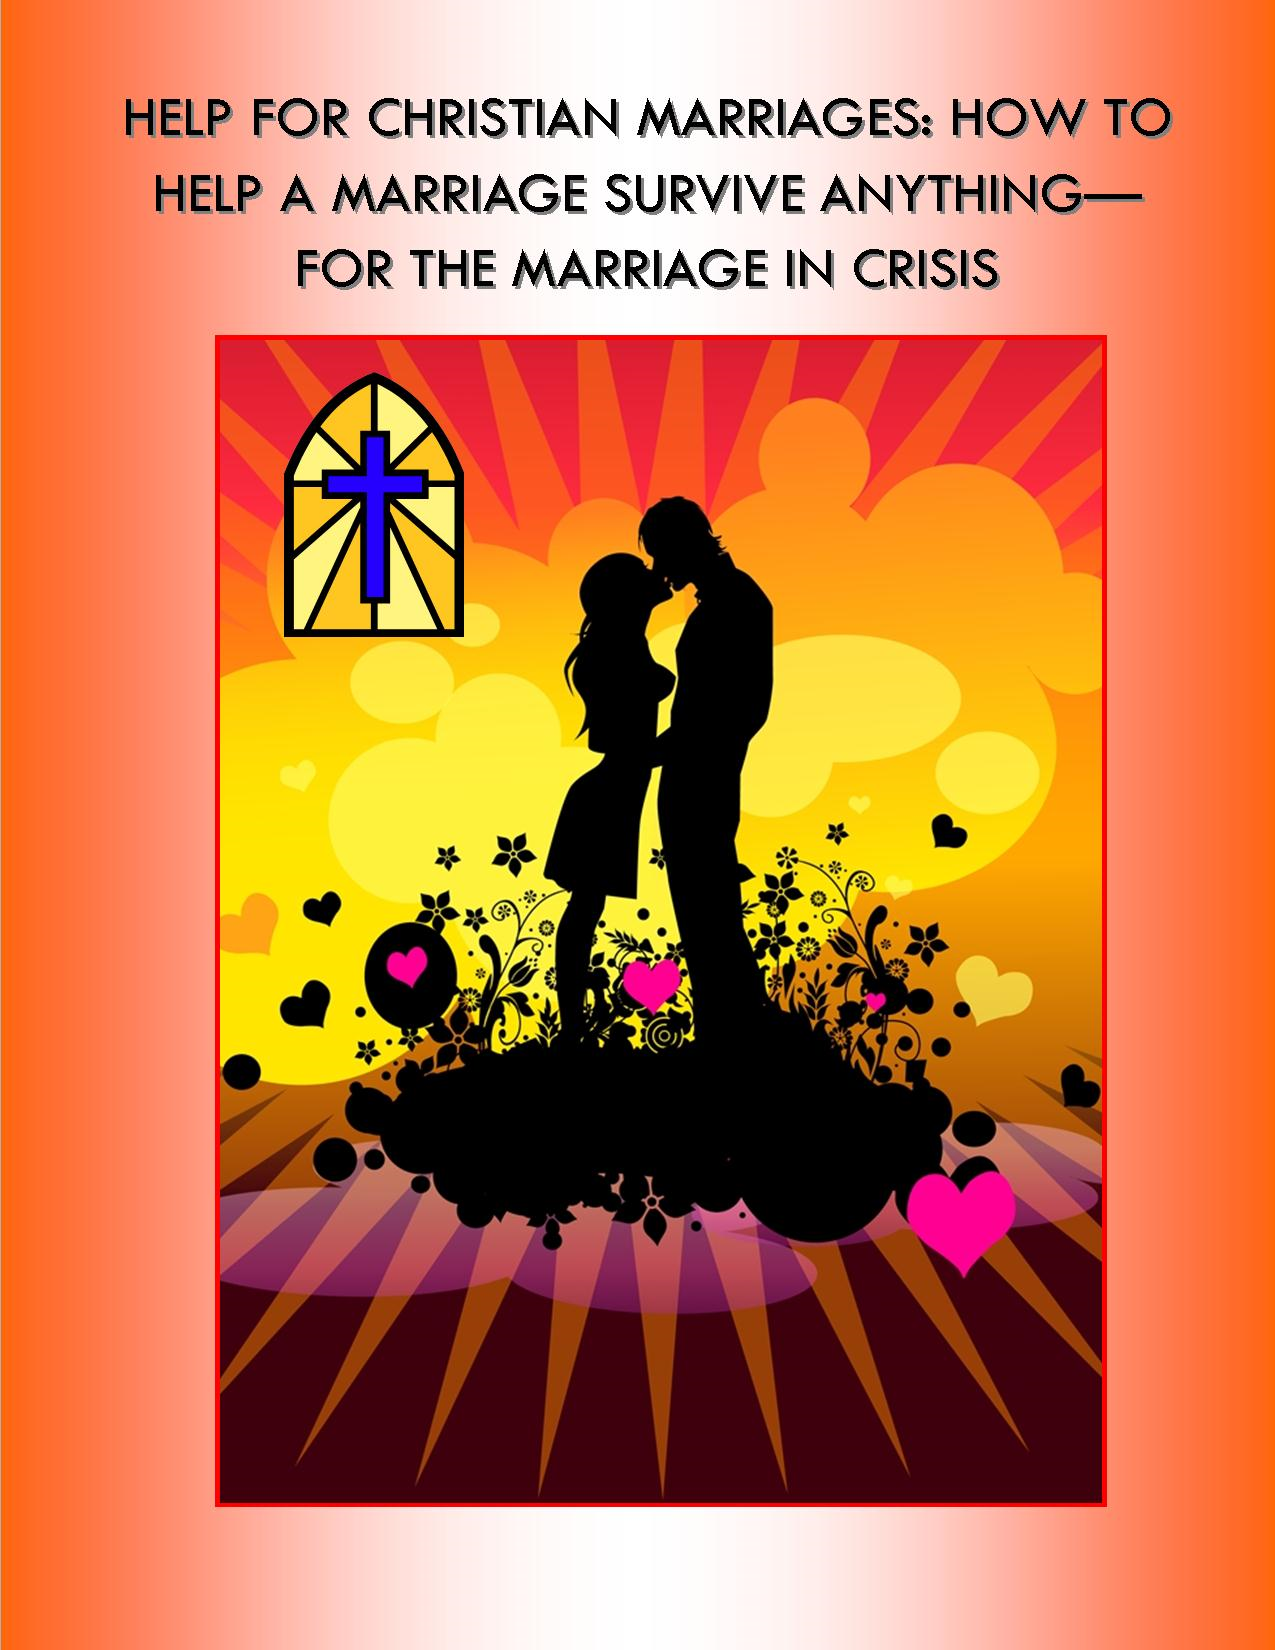 Help for Christian Marriages: How to Help a Marriage Survive Anything